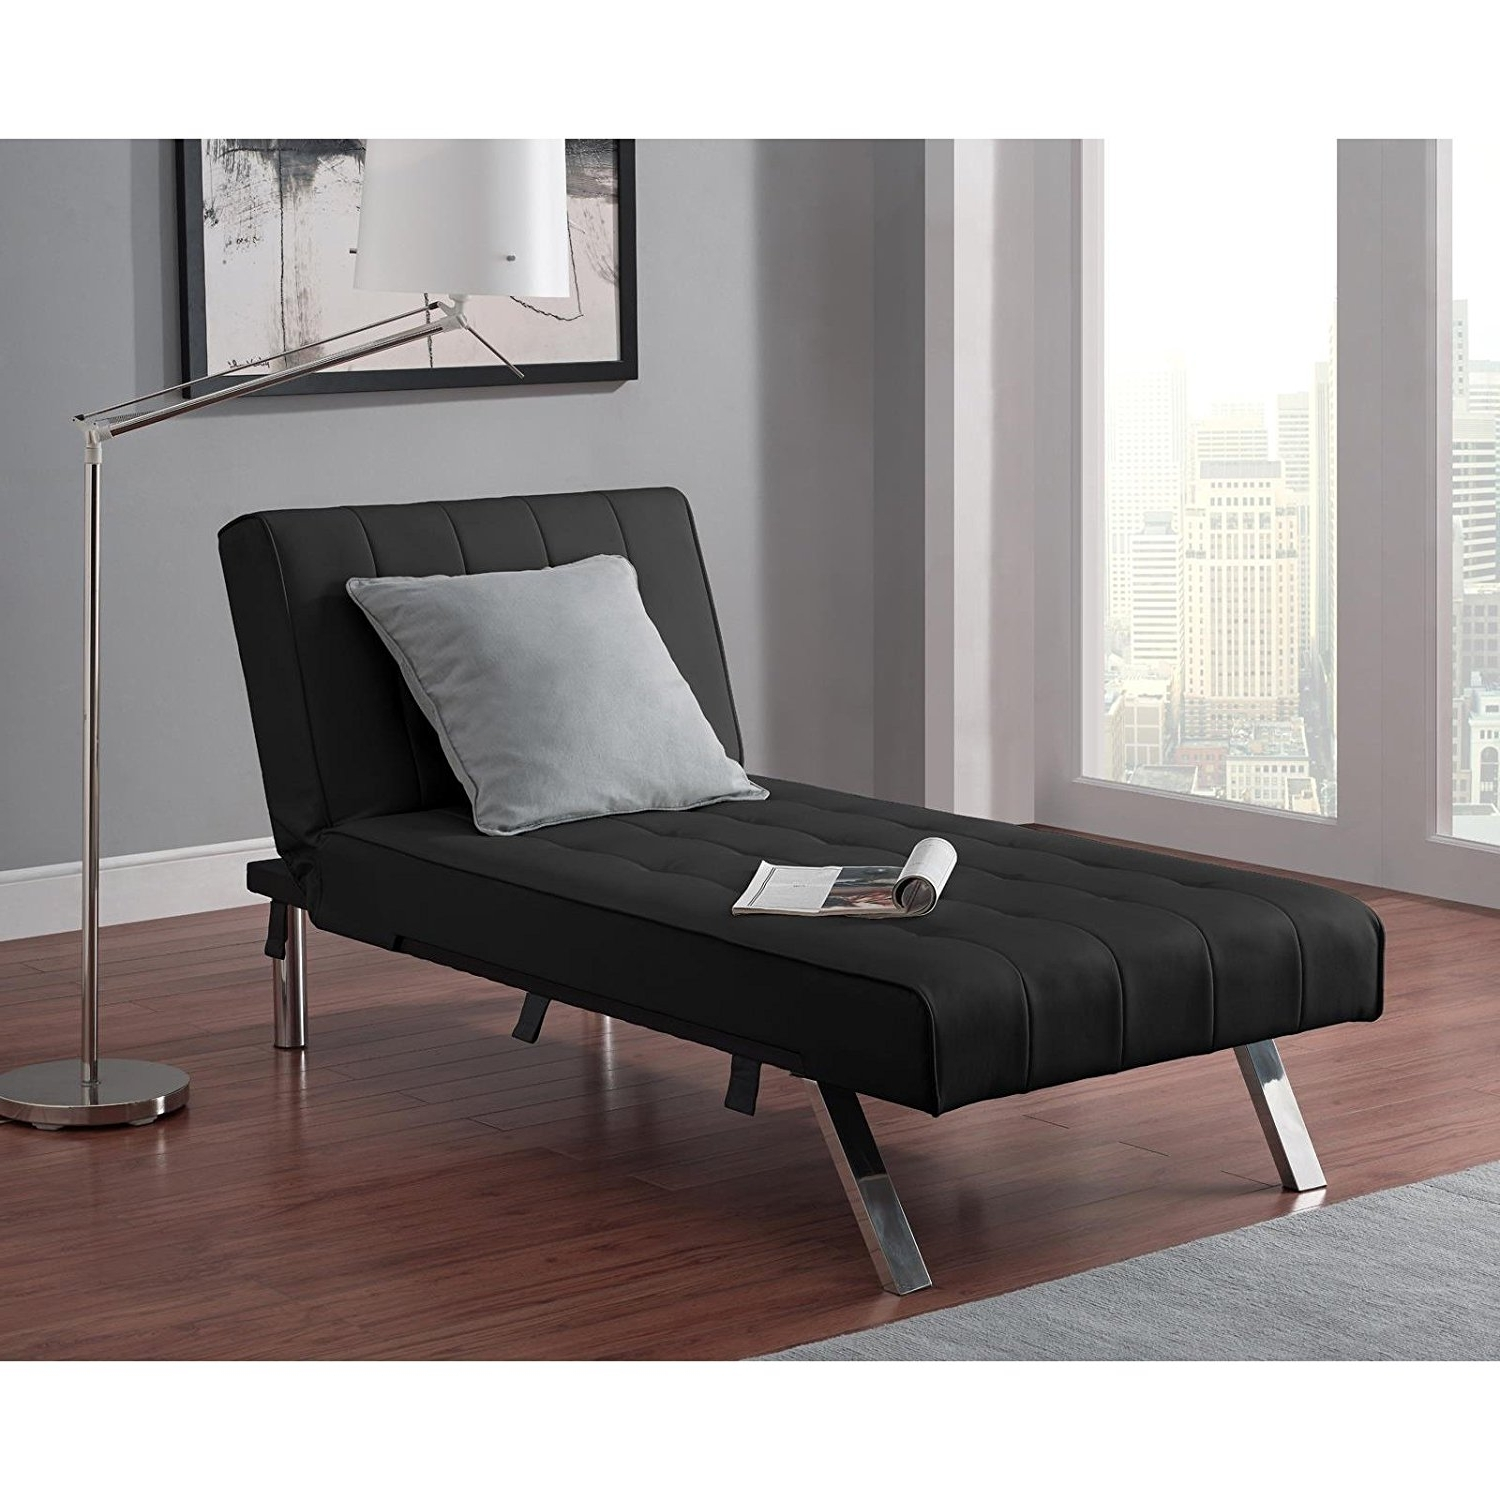 Most Recently Released Futons With Chaise Lounge Throughout Amazon: Emily Futon With Chaise Lounger Super Bonus Set Black (View 10 of 15)